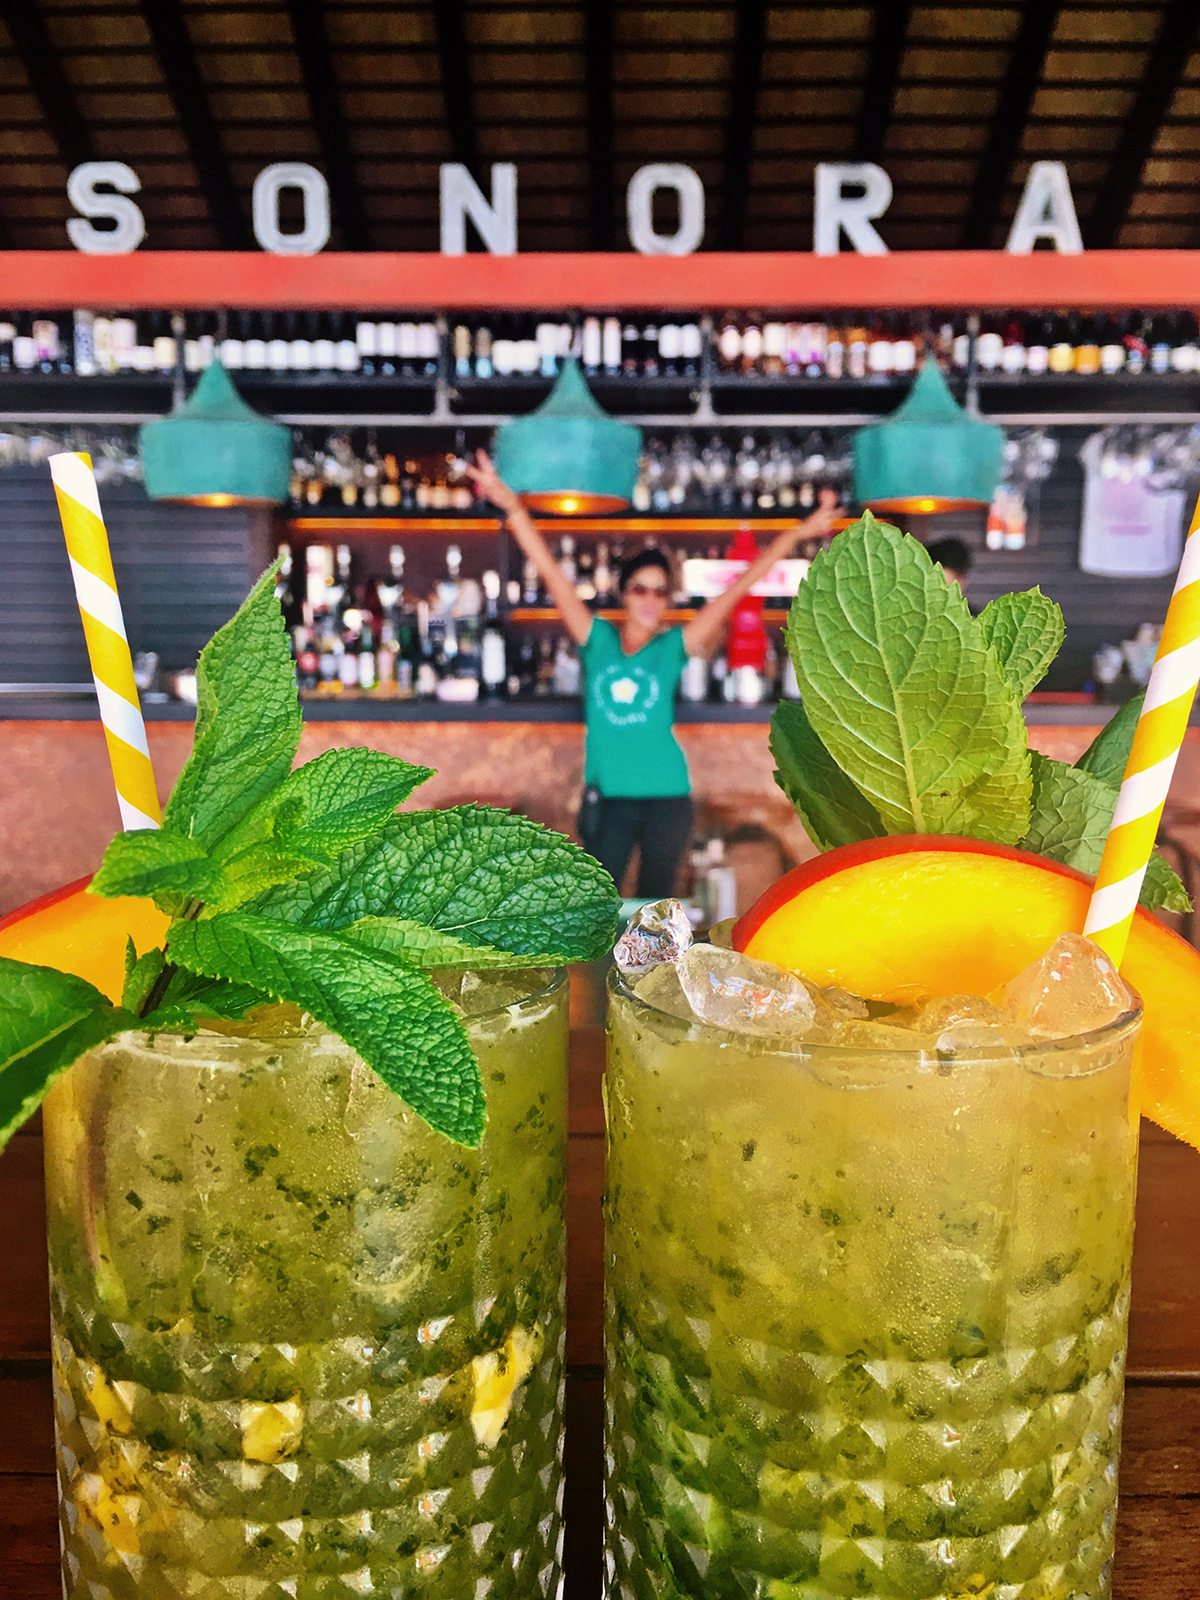 Sonora serve absolutely wonderful cocktails - note the use of paper straws, Sonora prides itself on being environmentally friendly